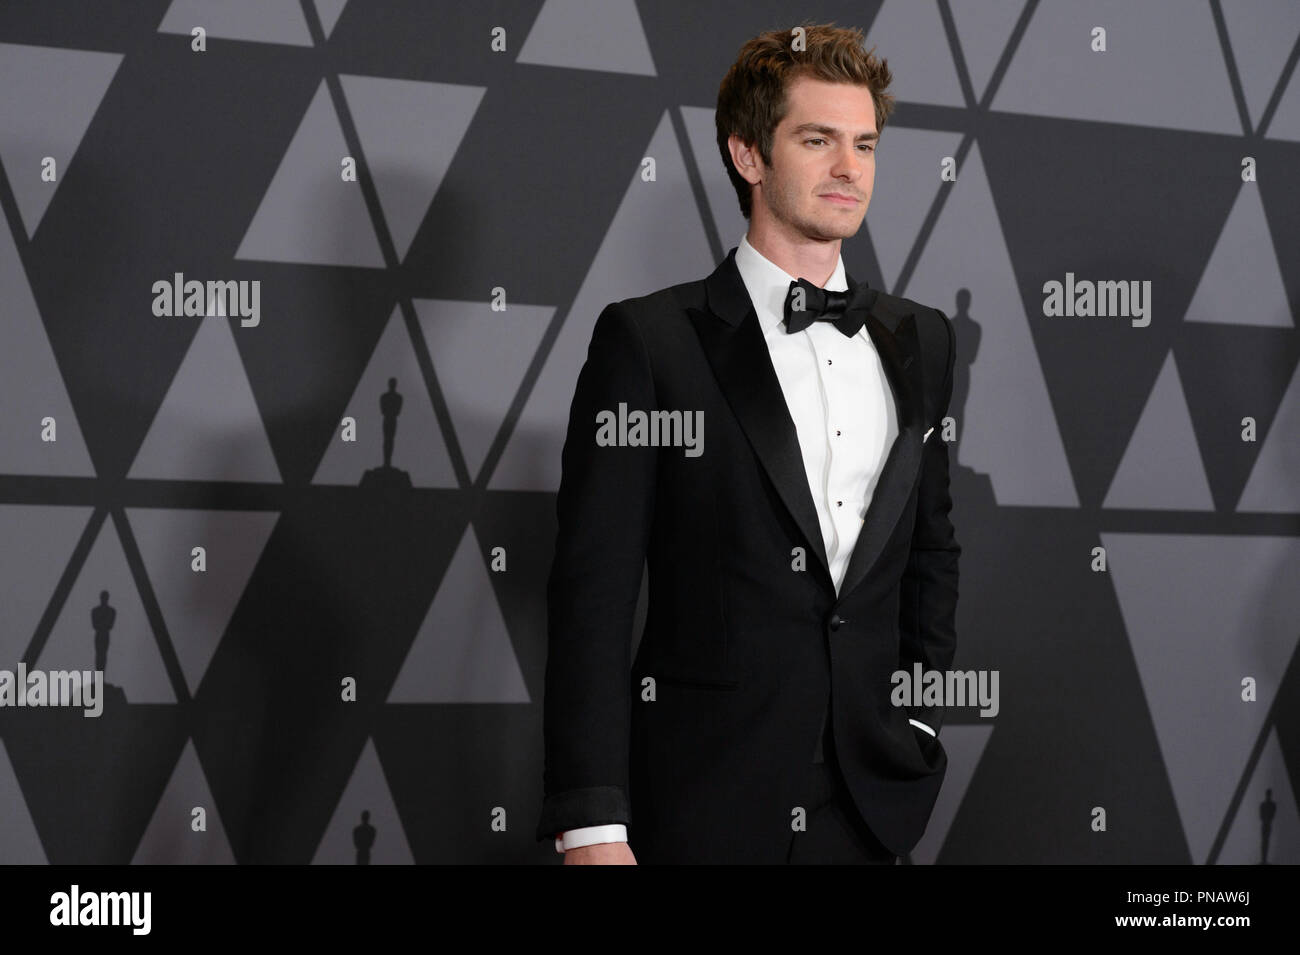 Andrew Garfield attends the Academy's 2017 Annual Governors Awards in The Ray Dolby Ballroom at Hollywood & Highland Center® in Hollywood, CA, on Saturday, November 11, 2017.  File Reference # 33474_028THA  For Editorial Use Only -  All Rights Reserved - Stock Image